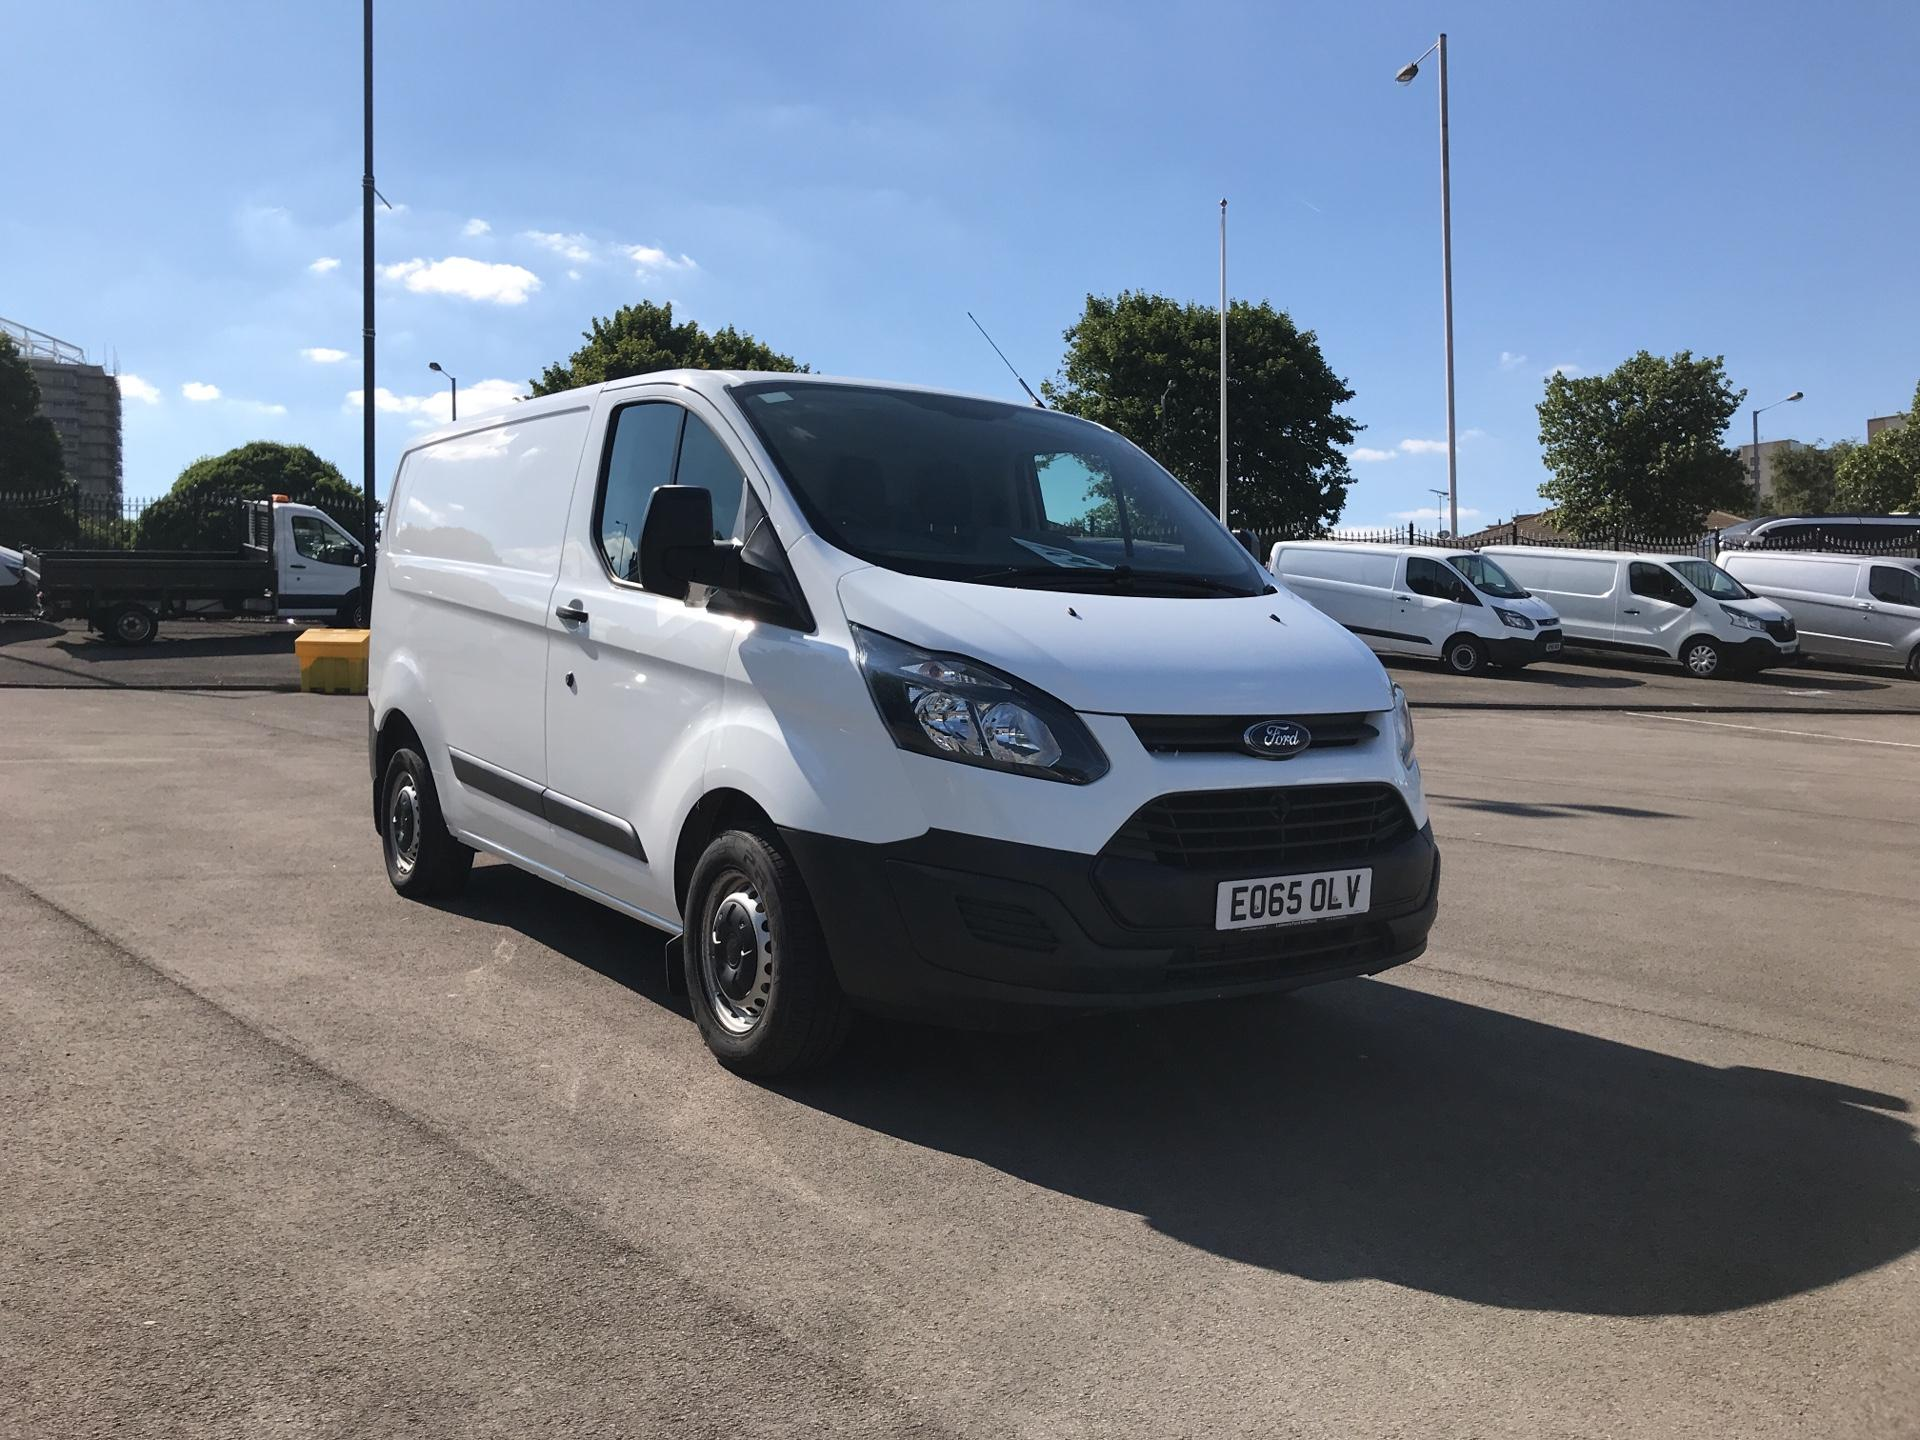 2015 Ford Transit Custom DIESEL L1 FWD 2.2 TDCI 100PS LOW ROOF VAN EURO 5 (EO65OLV)